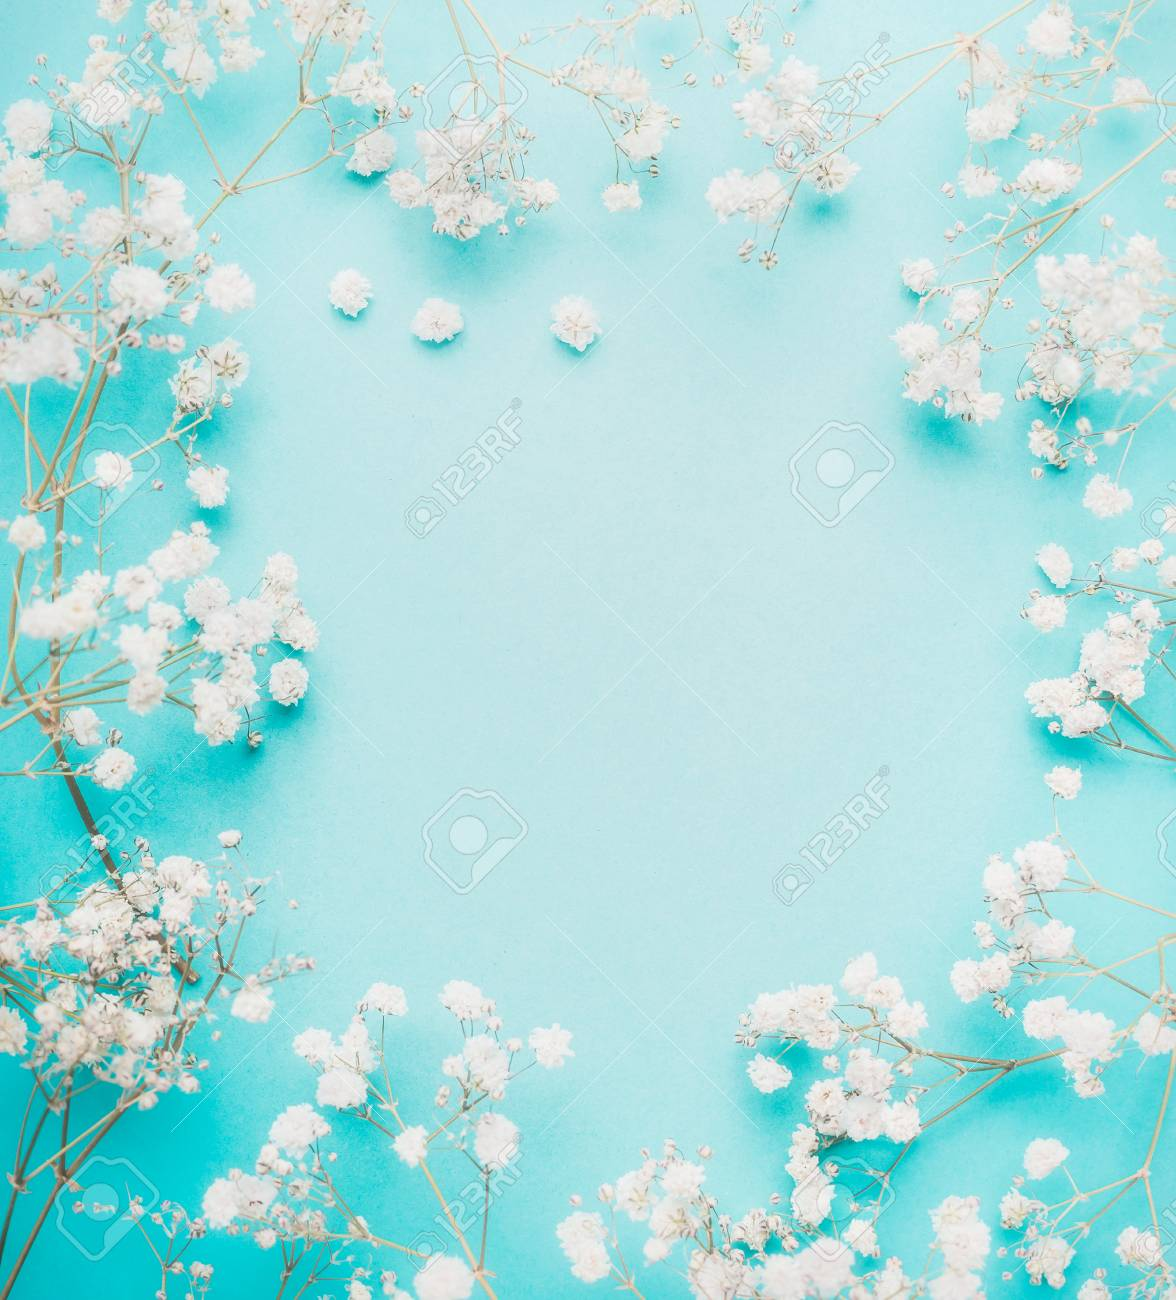 Beautiful White Little Flowers On Light Blue Turquoise Background